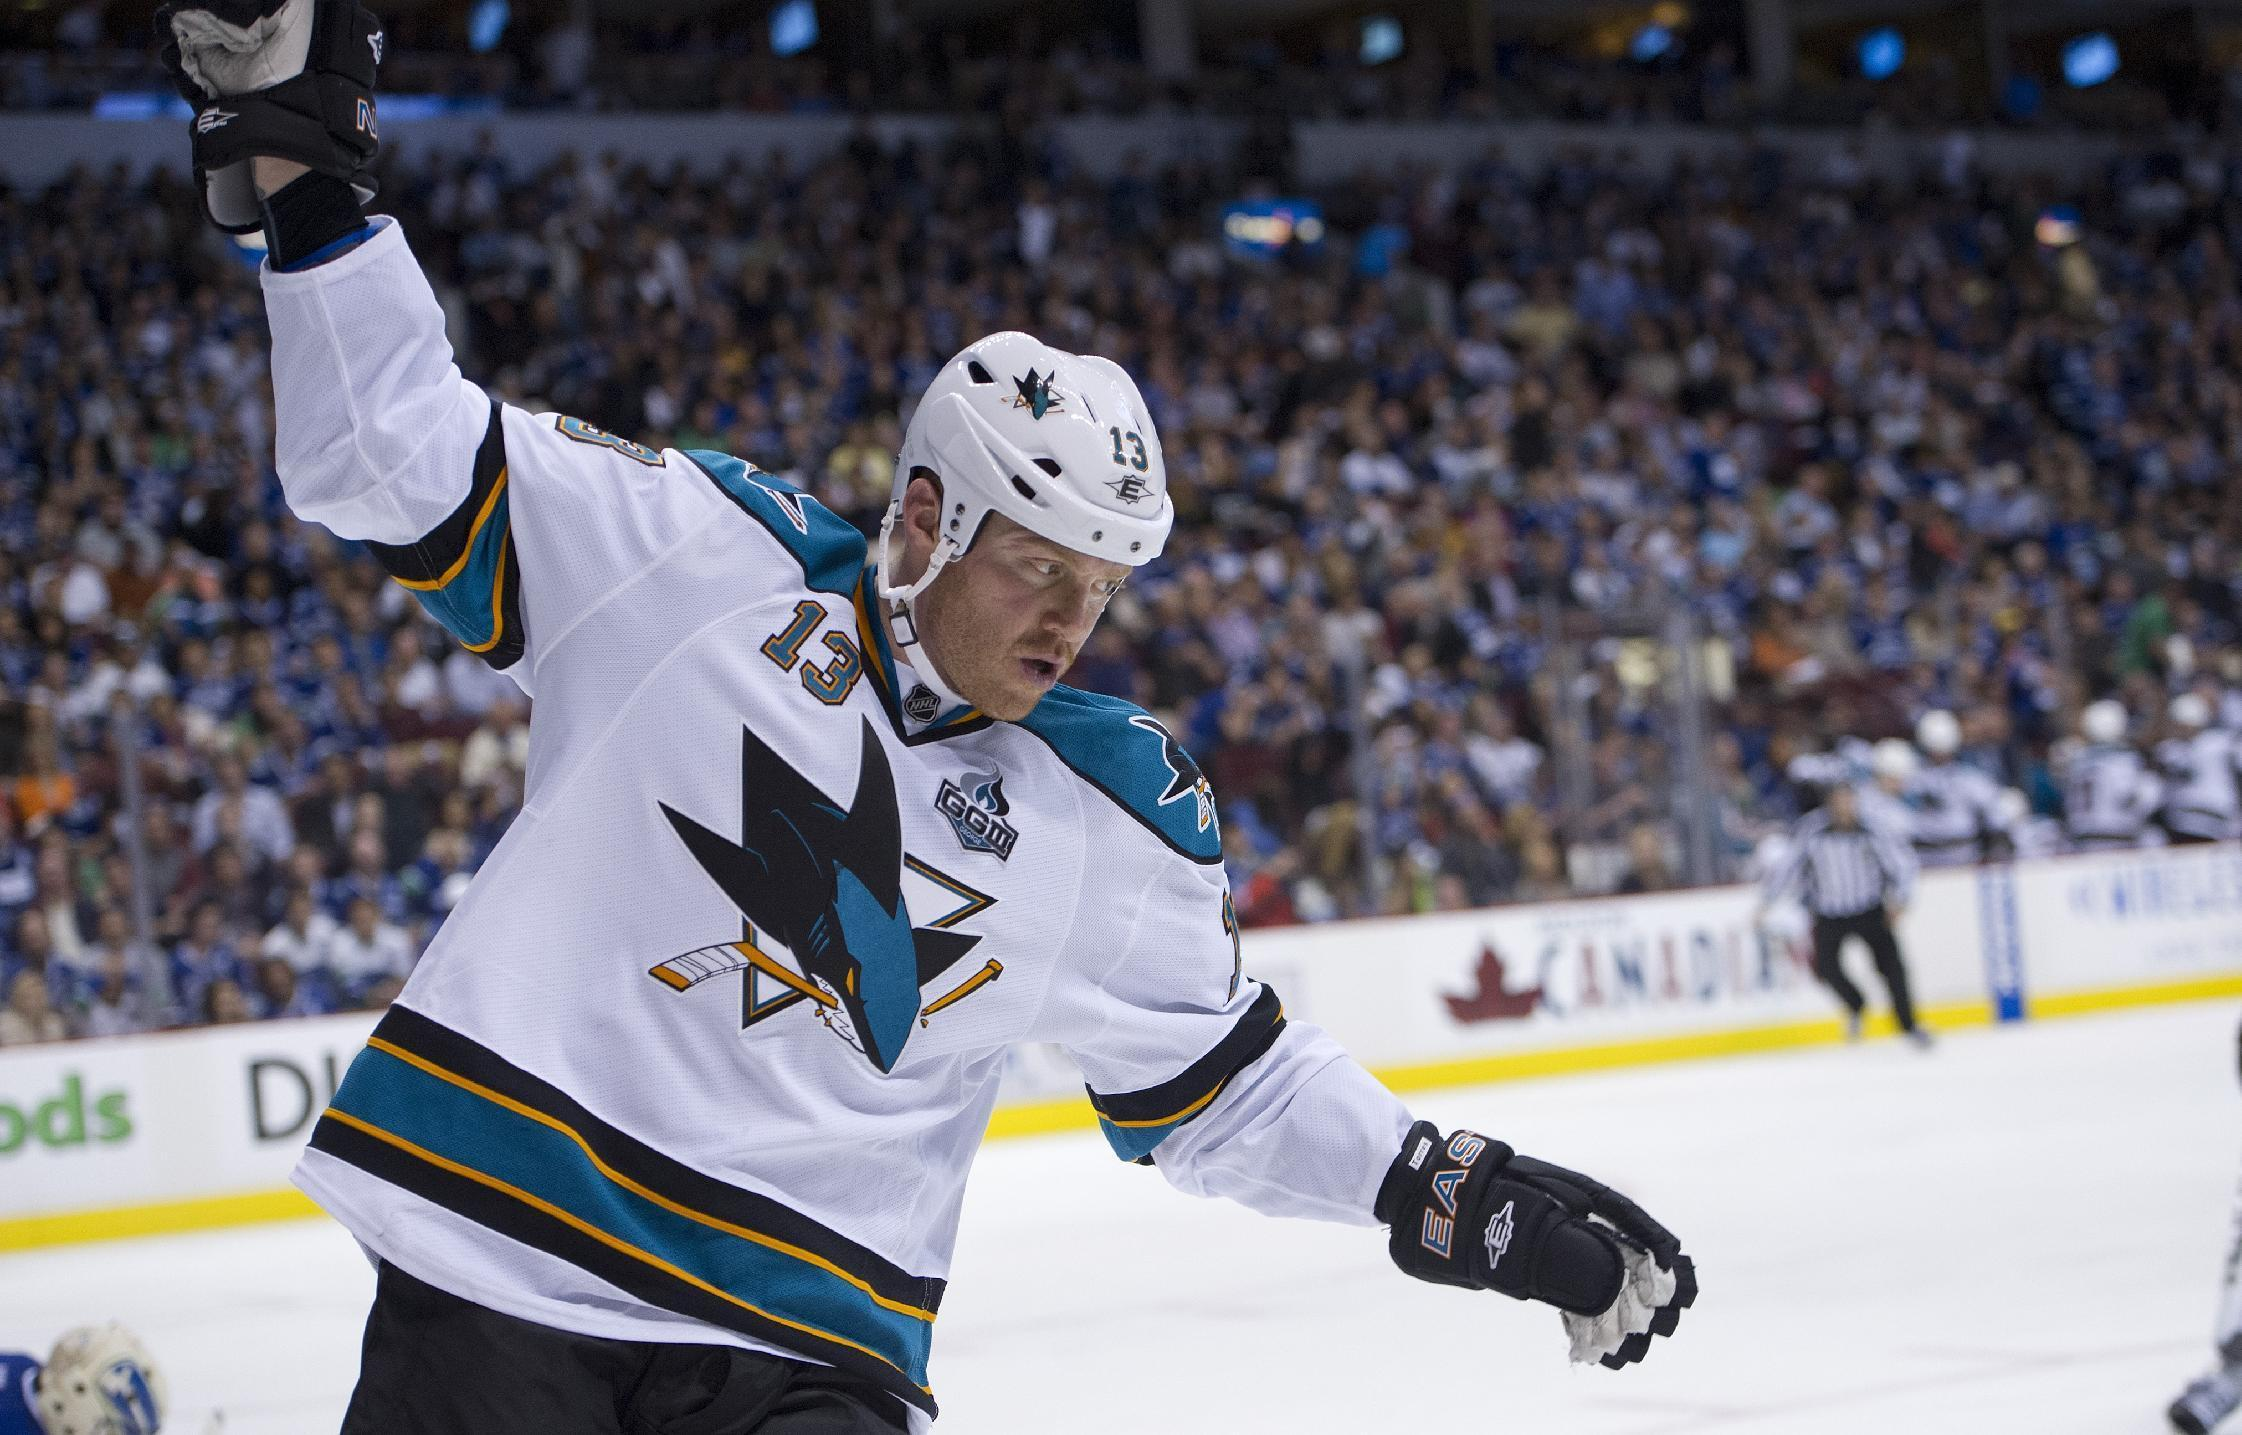 NHL - Sharks forward Torres banned 41 games for hit to head